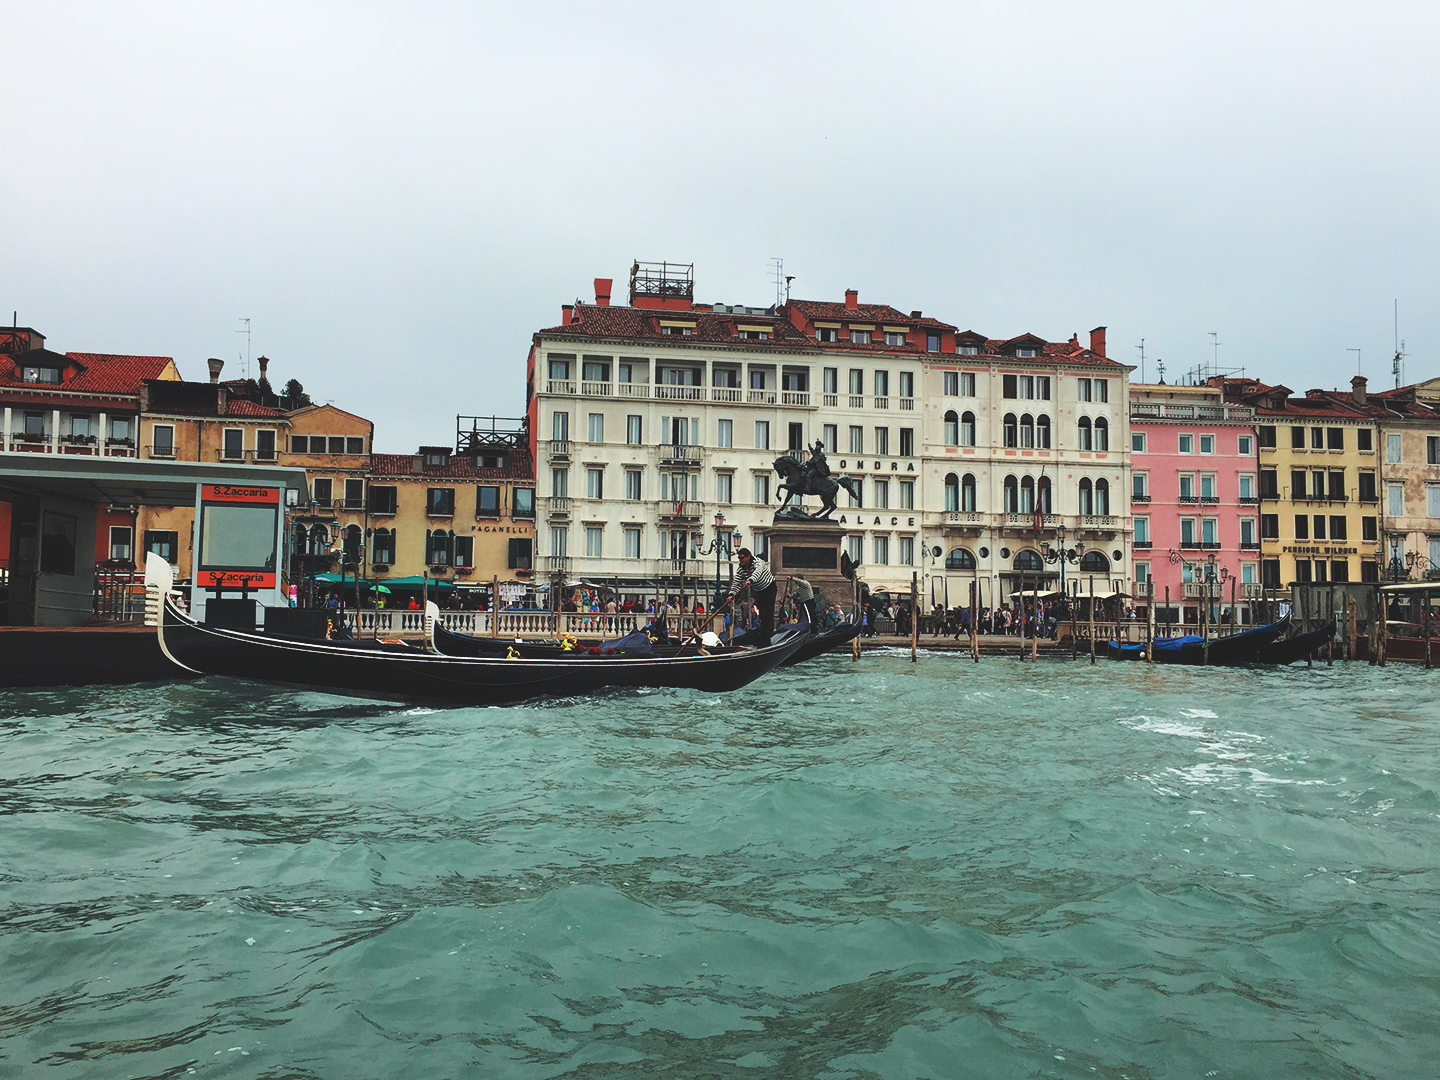 A photograph taken in Venice, Italy 2015